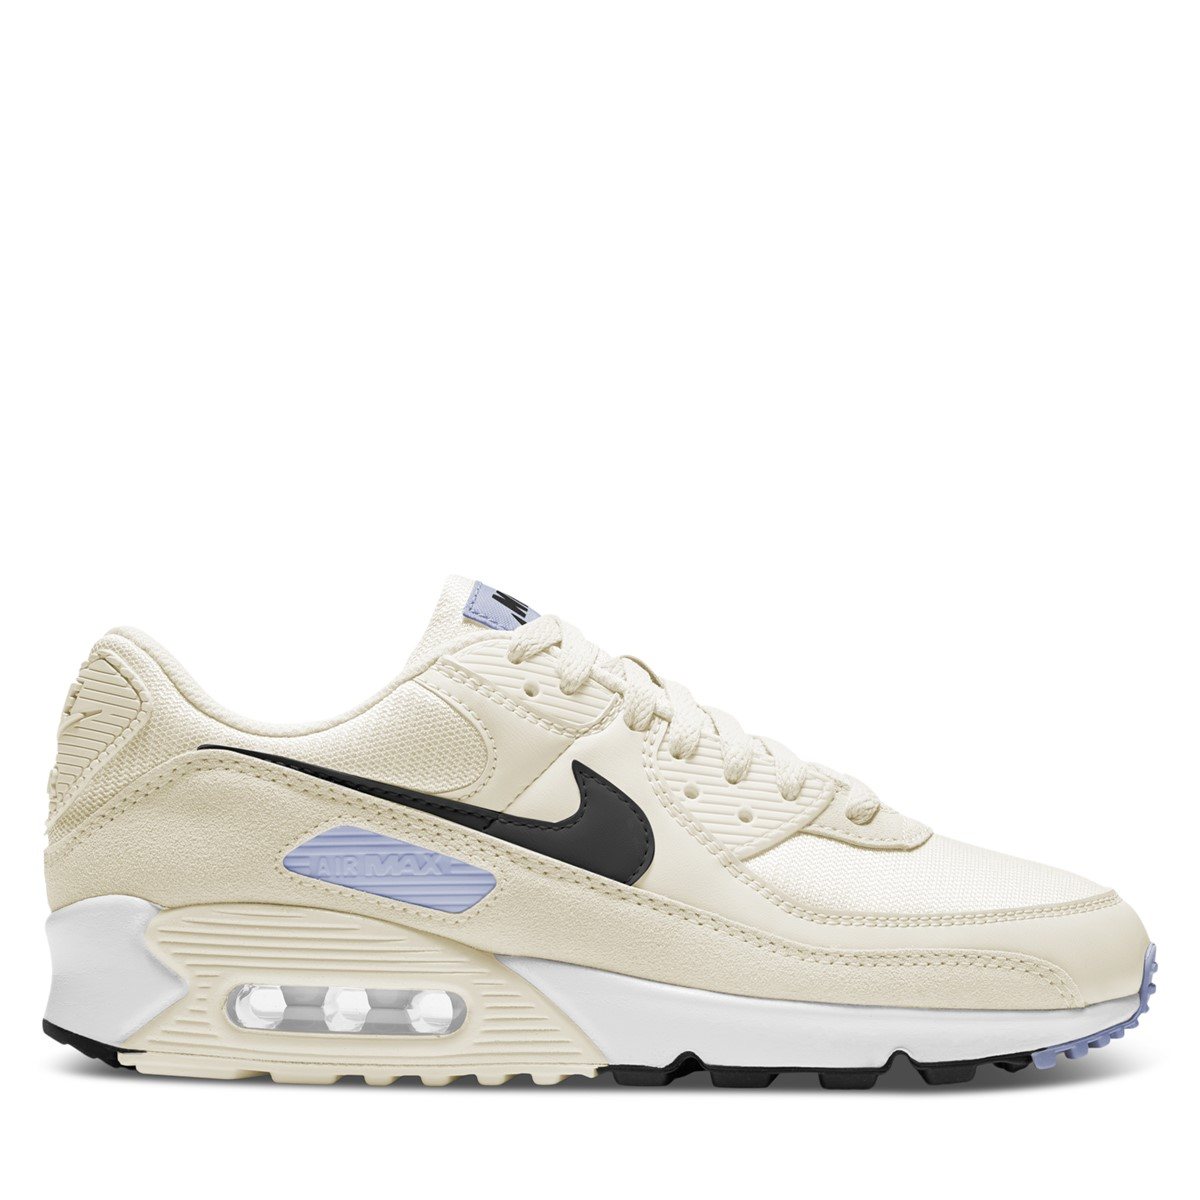 Women's Air Max 90 Sneakers in Off-White